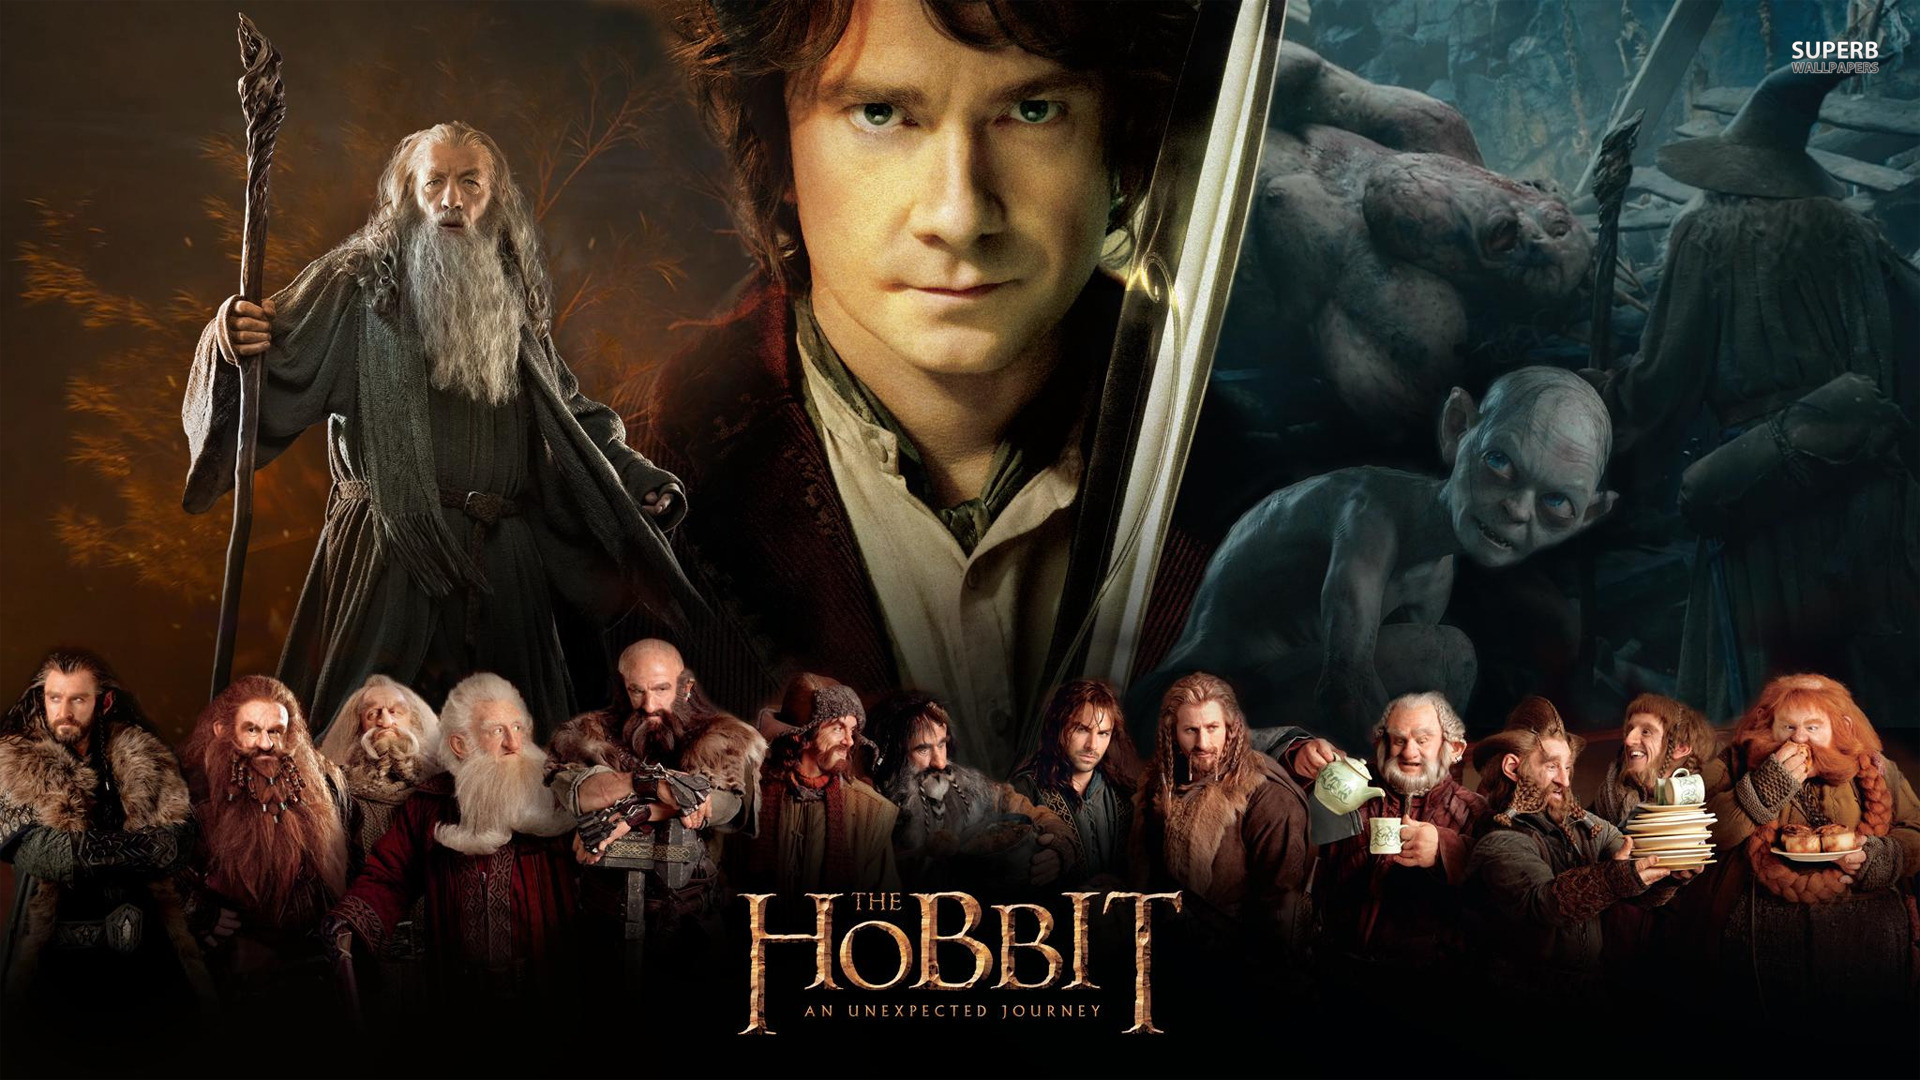 http://img2.wikia.nocookie.net/__cb20141223163021/lotr/images/1/1e/The-hobbit-an-unexpected-journey.jpg